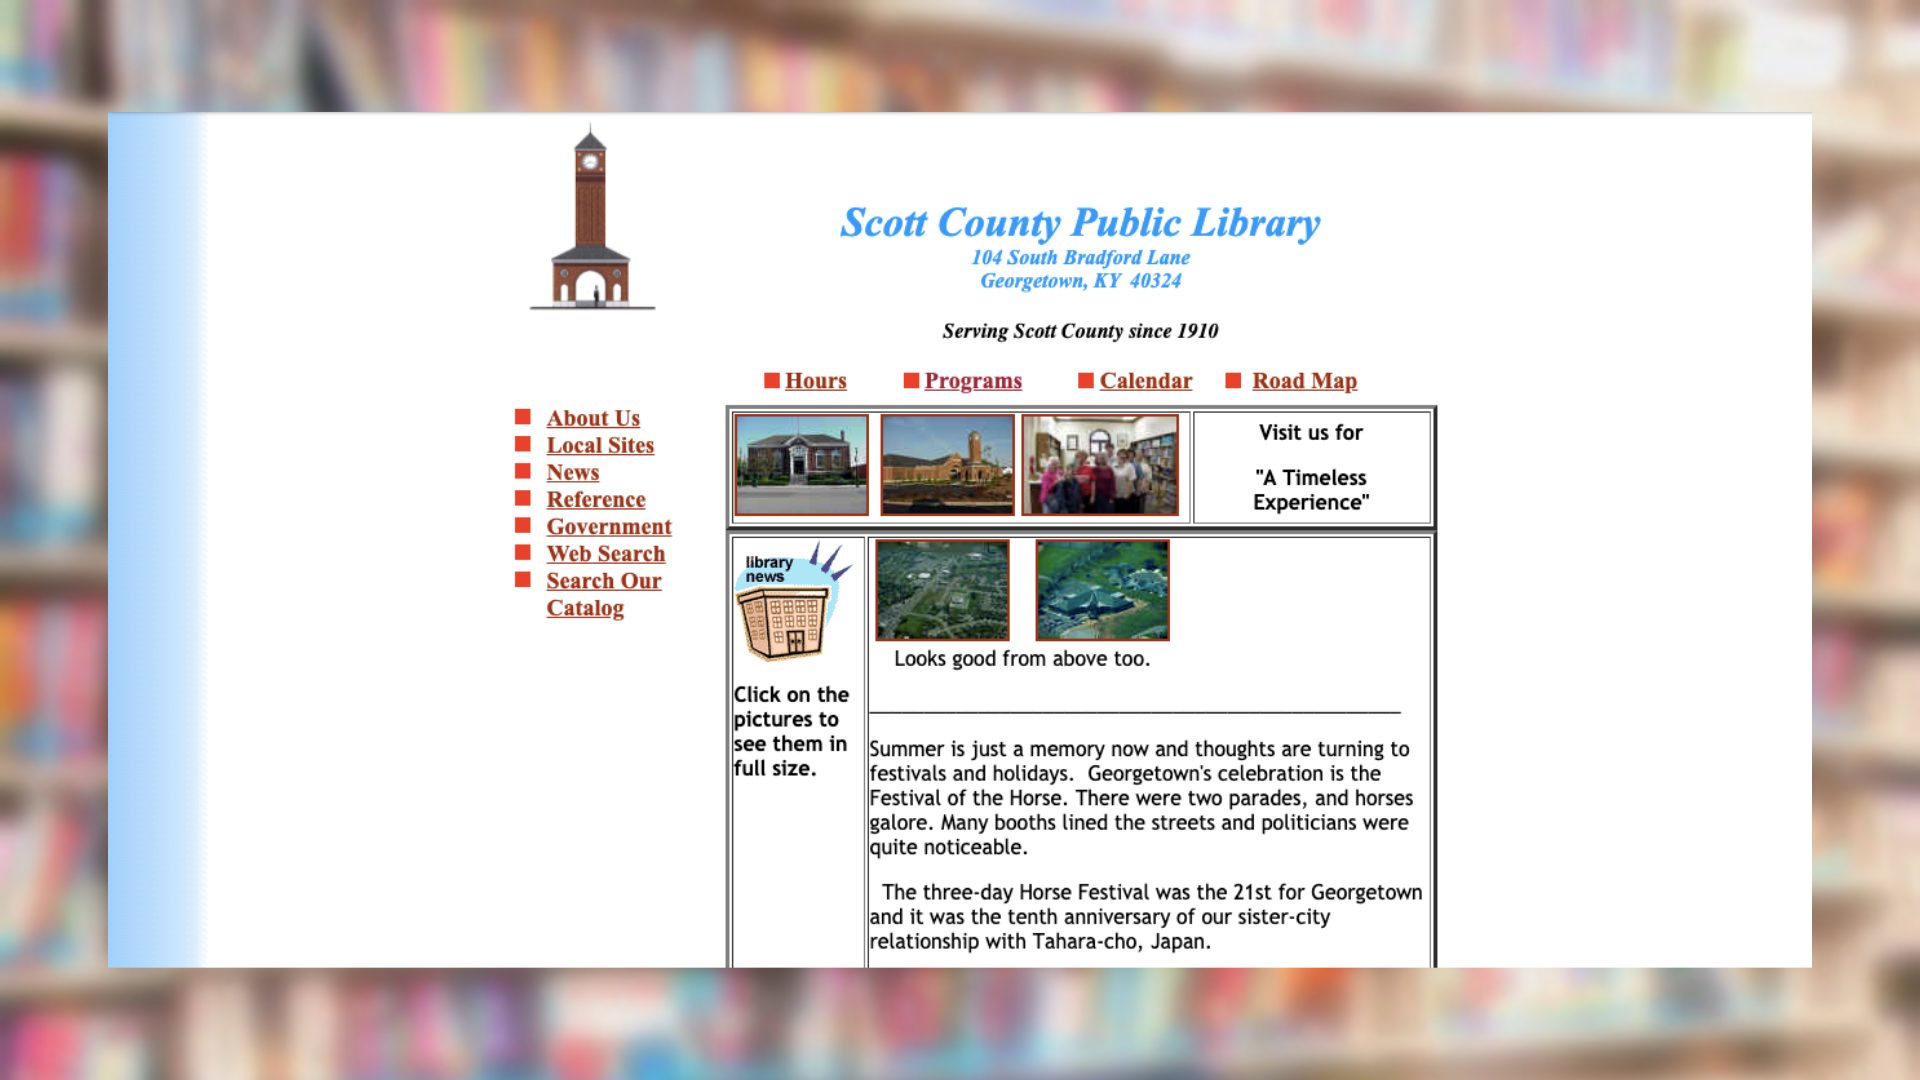 Scott County Public Library Archived Website in 2001